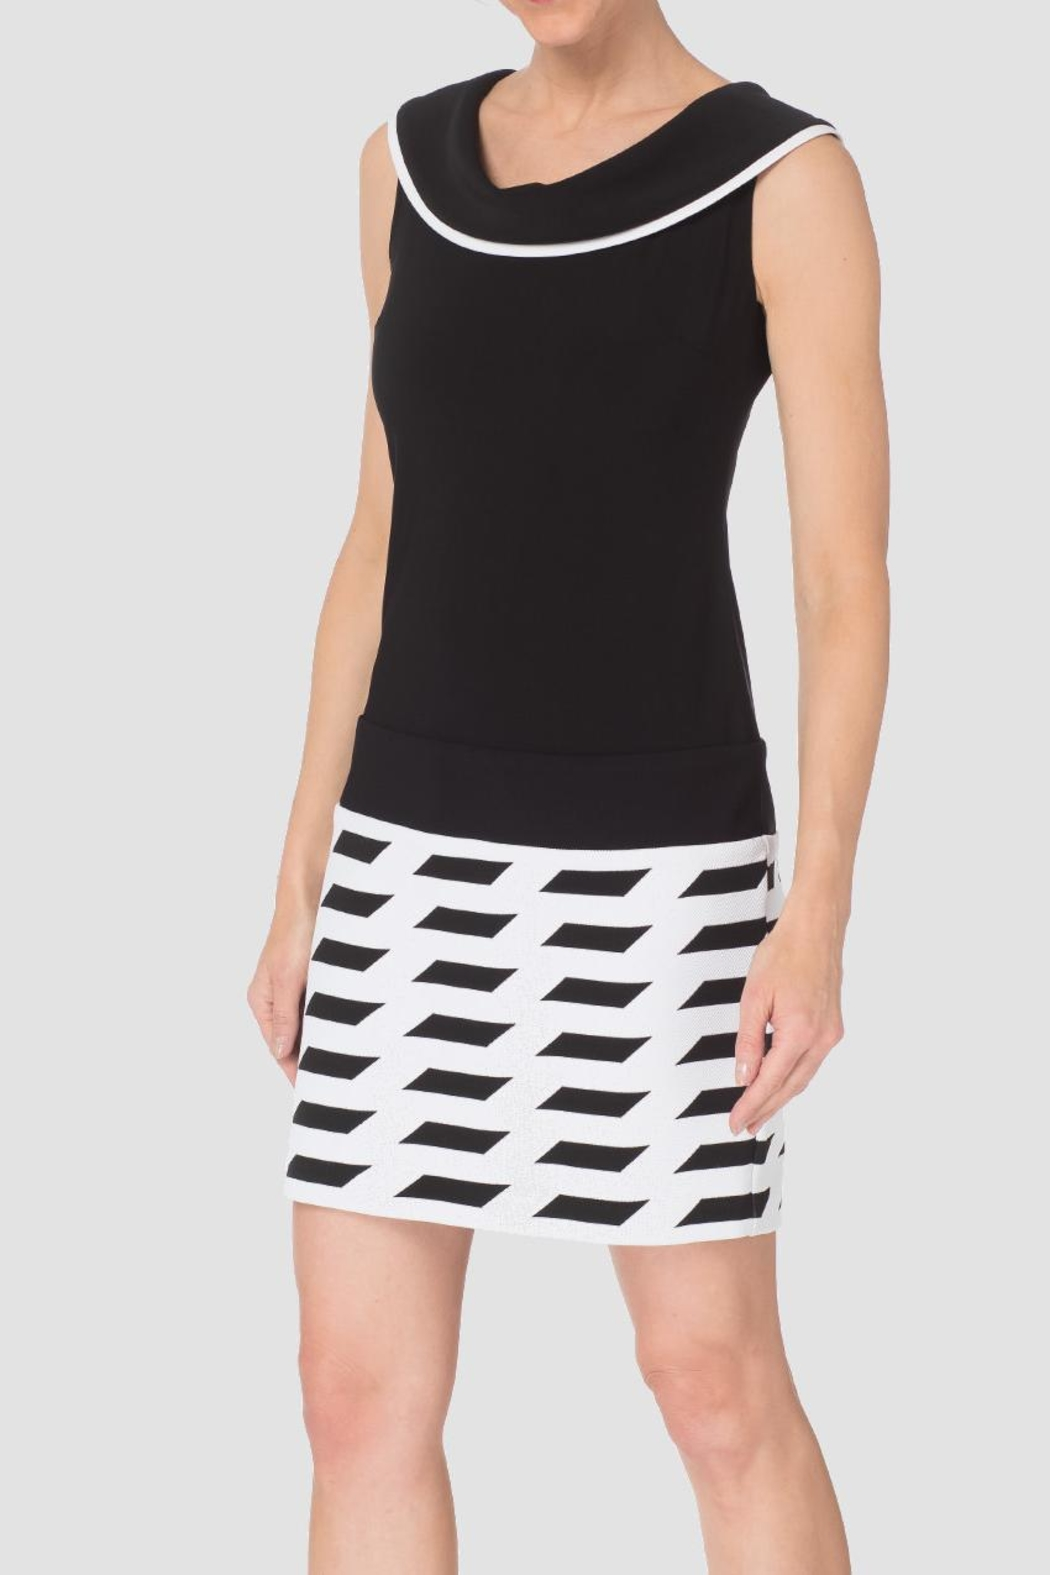 Joseph Ribkoff Black/white Sheath Dress - Front Cropped Image